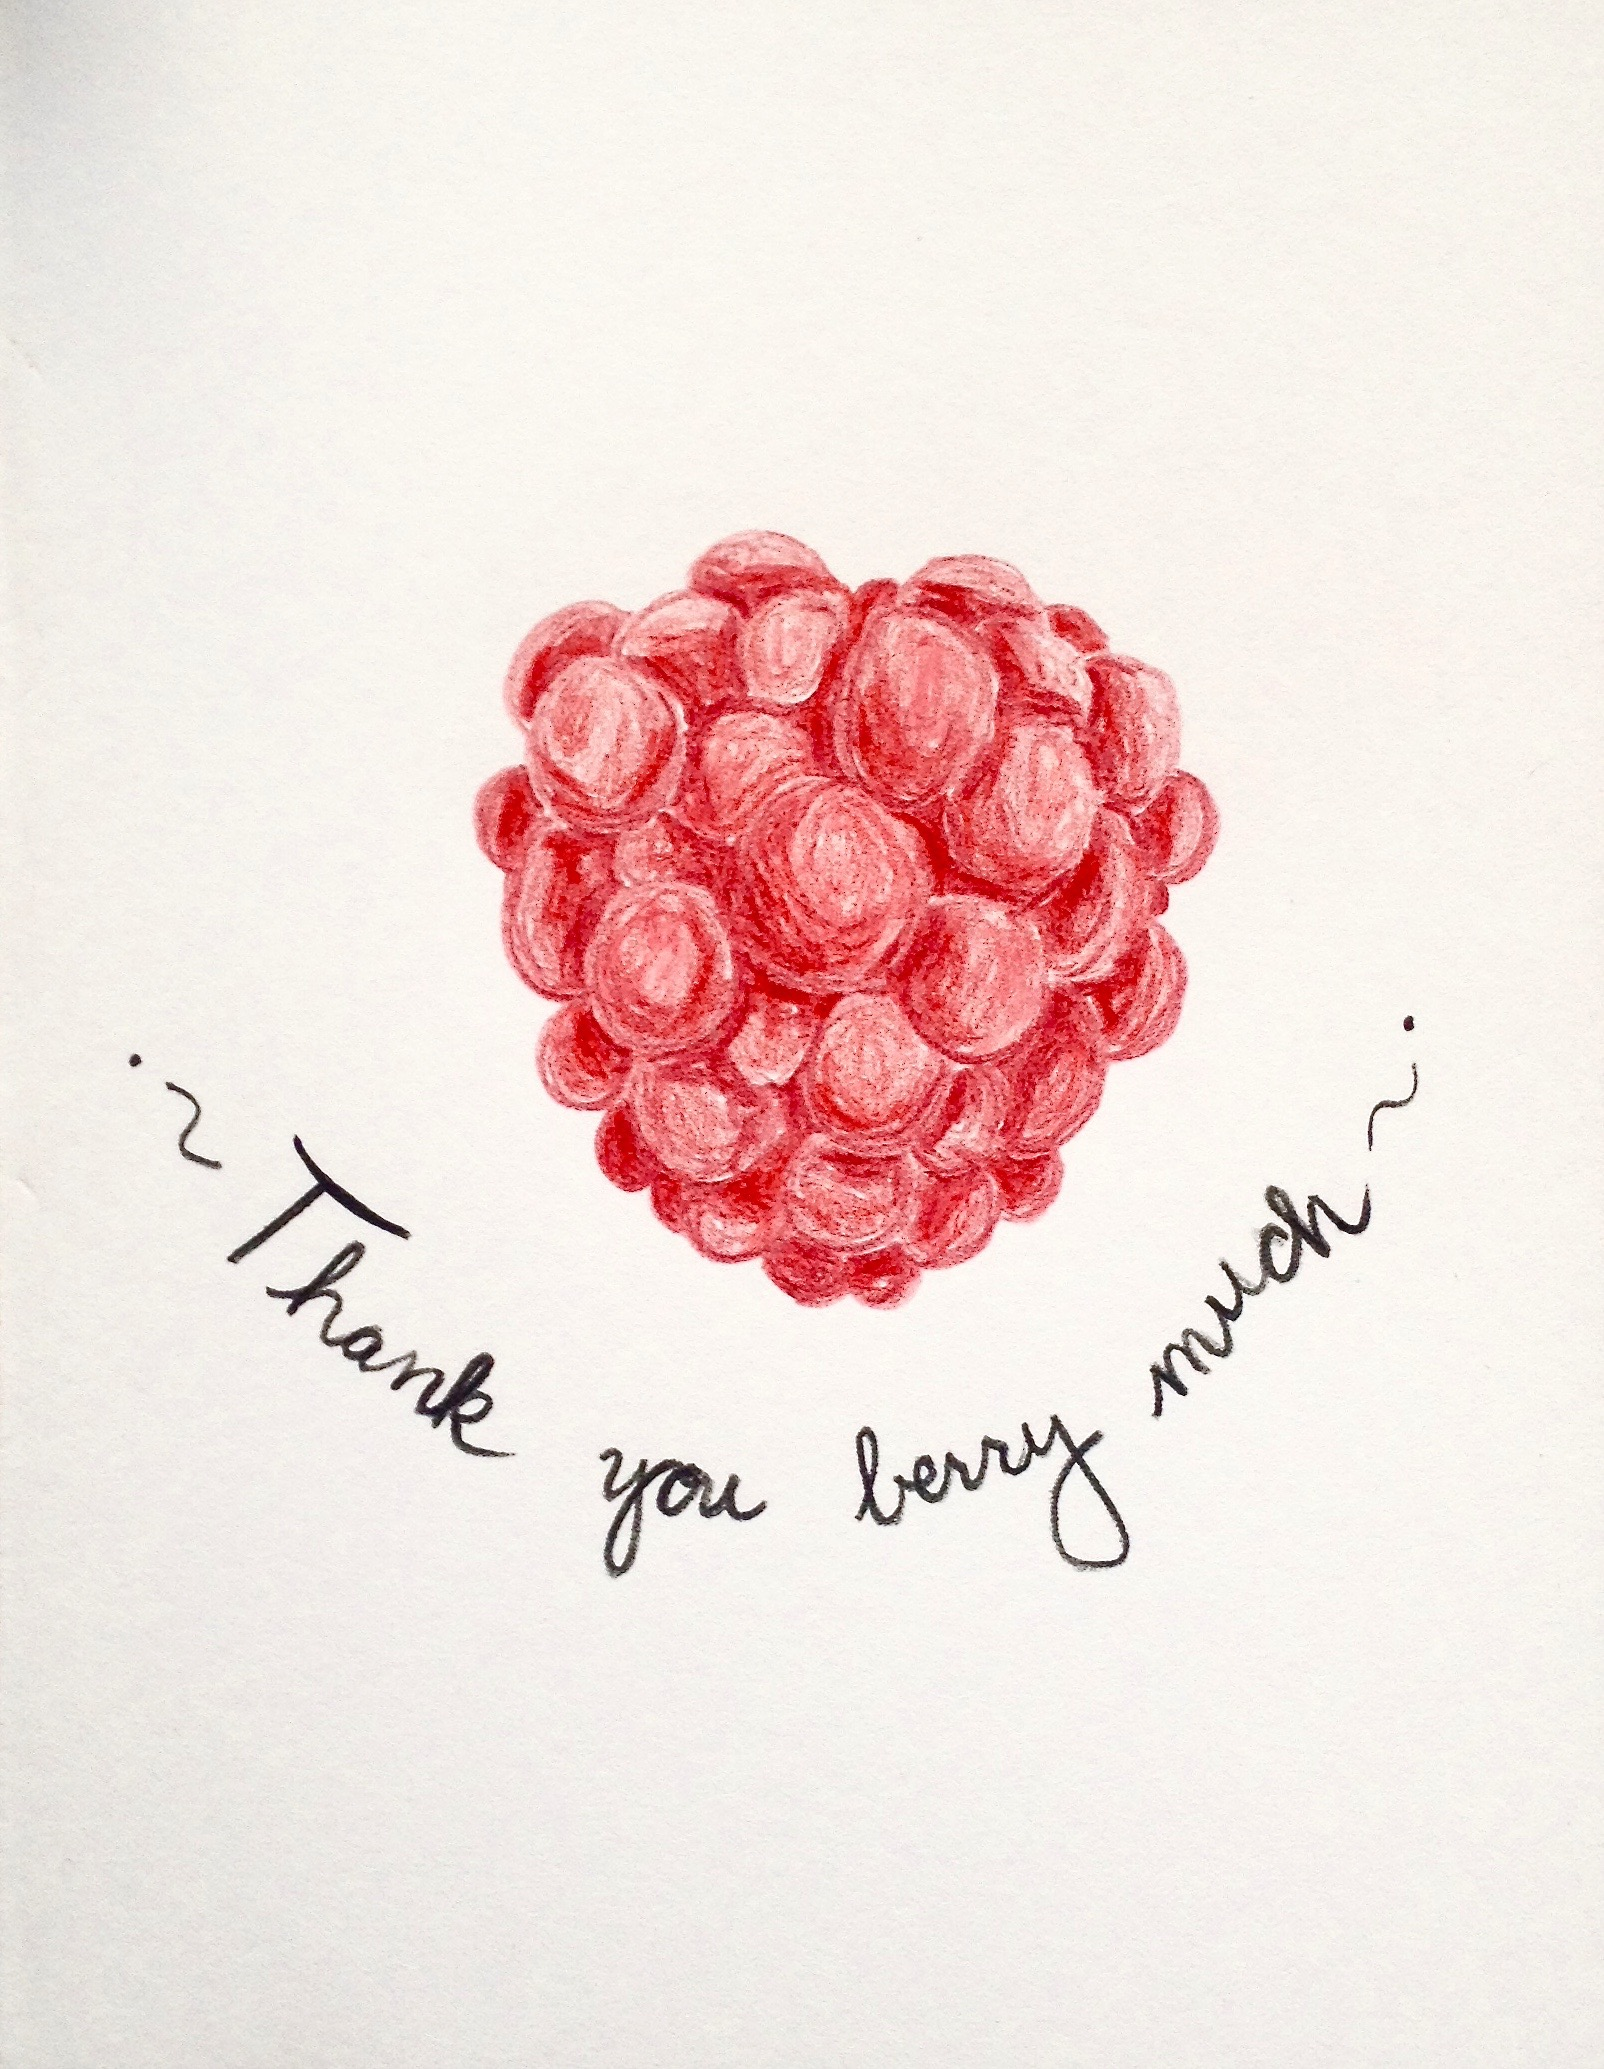 thank you berry much :)